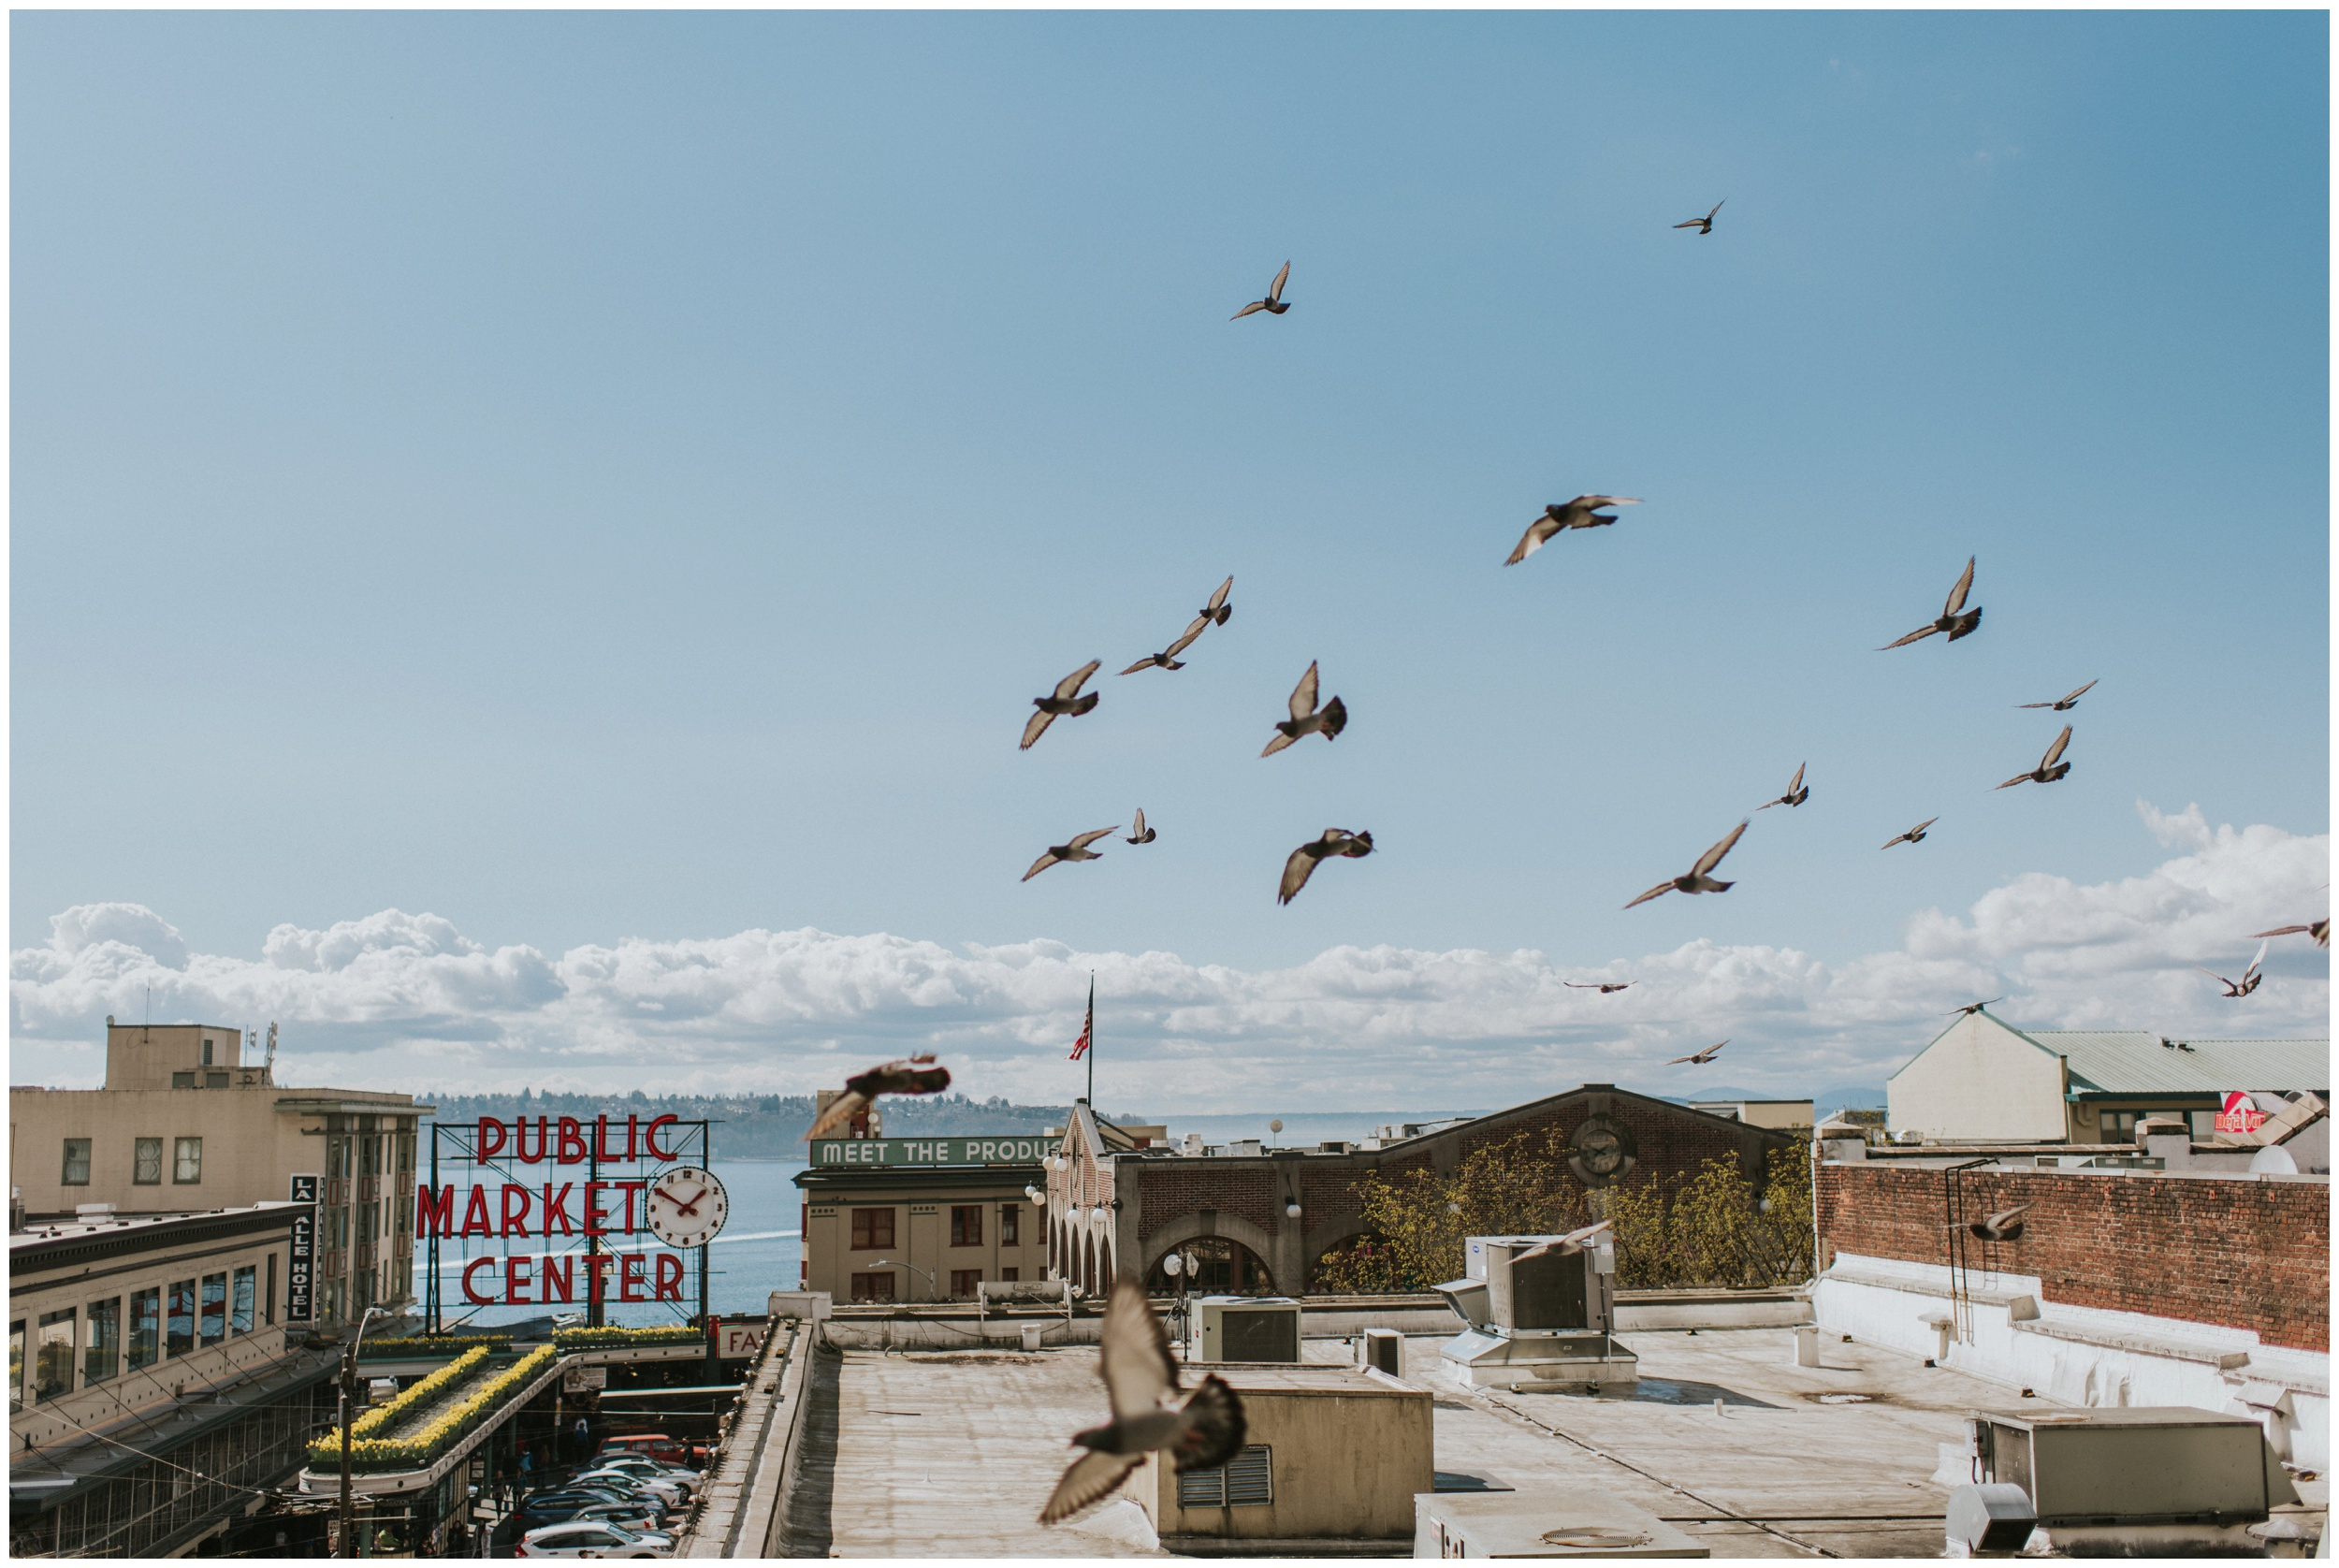 Pike place market roof top portrait with birds flying in the sky | Seattle Engagement Photographer www.riversandroadsphotography.com